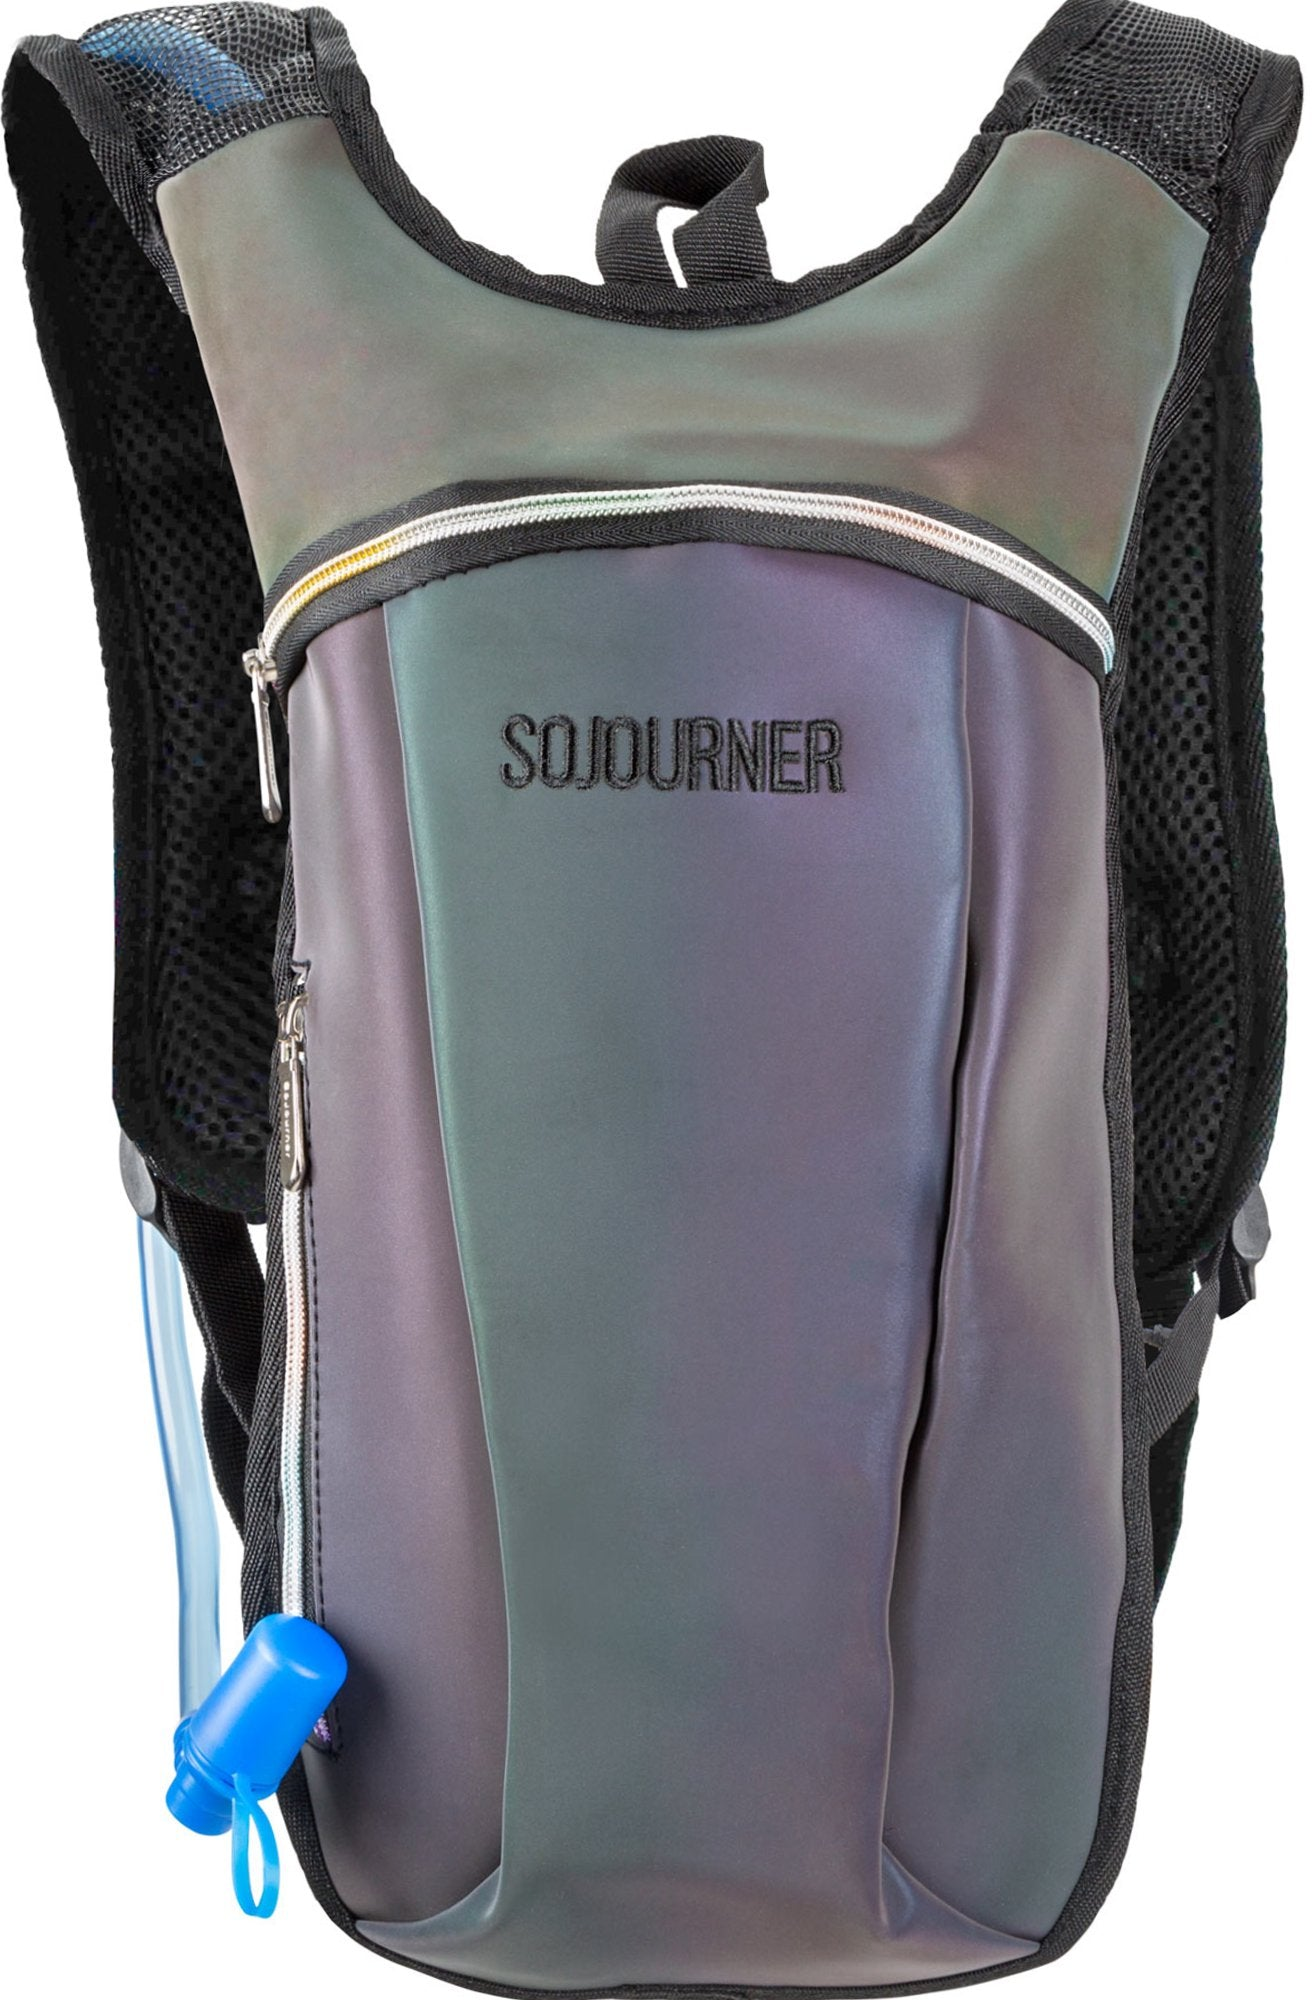 79c54e47ce Hydration Pack Backpack - 2L Water Bladder - Iridescent Blue ...